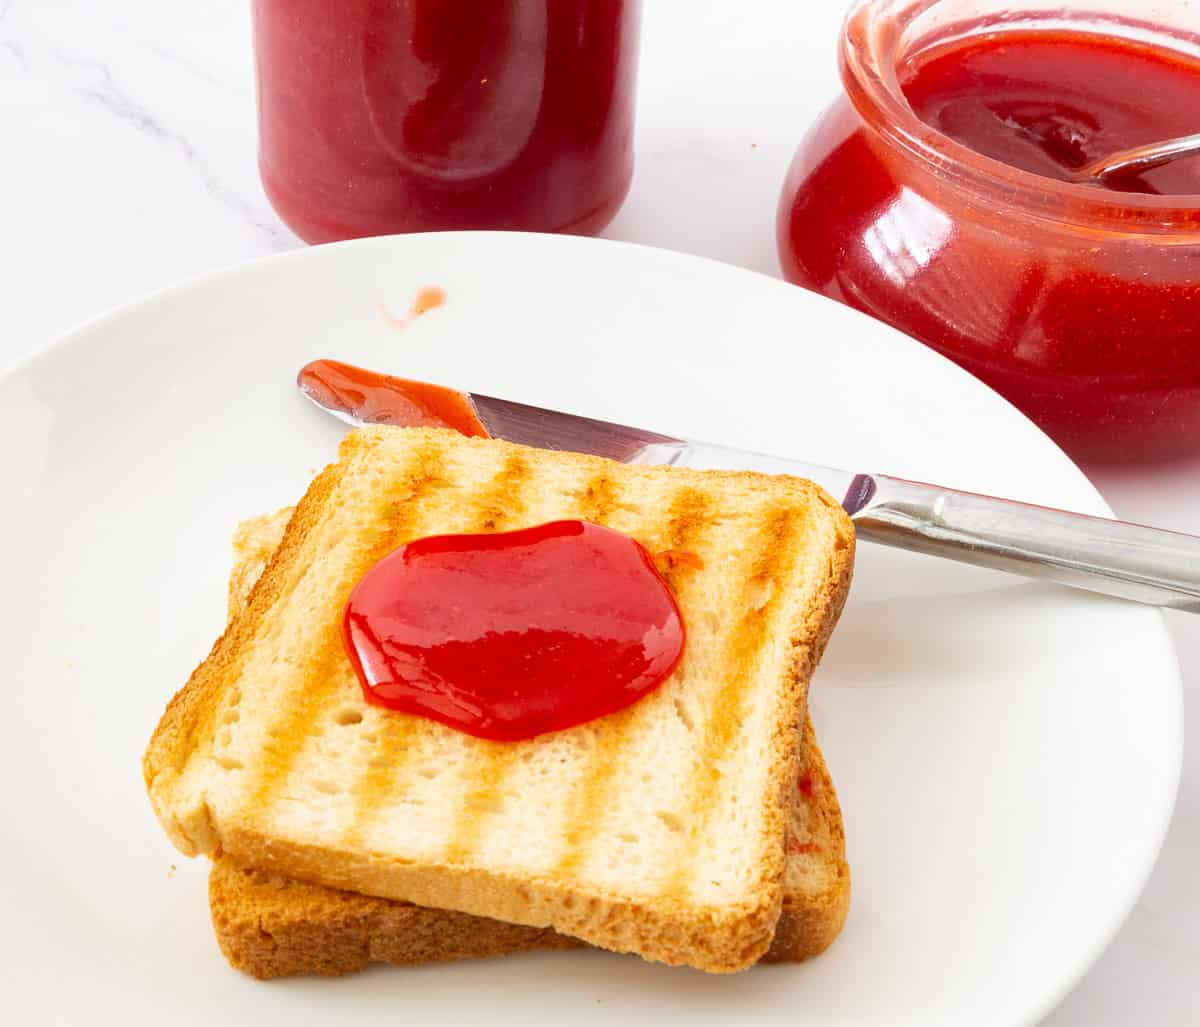 A toast with strawberry jelly.